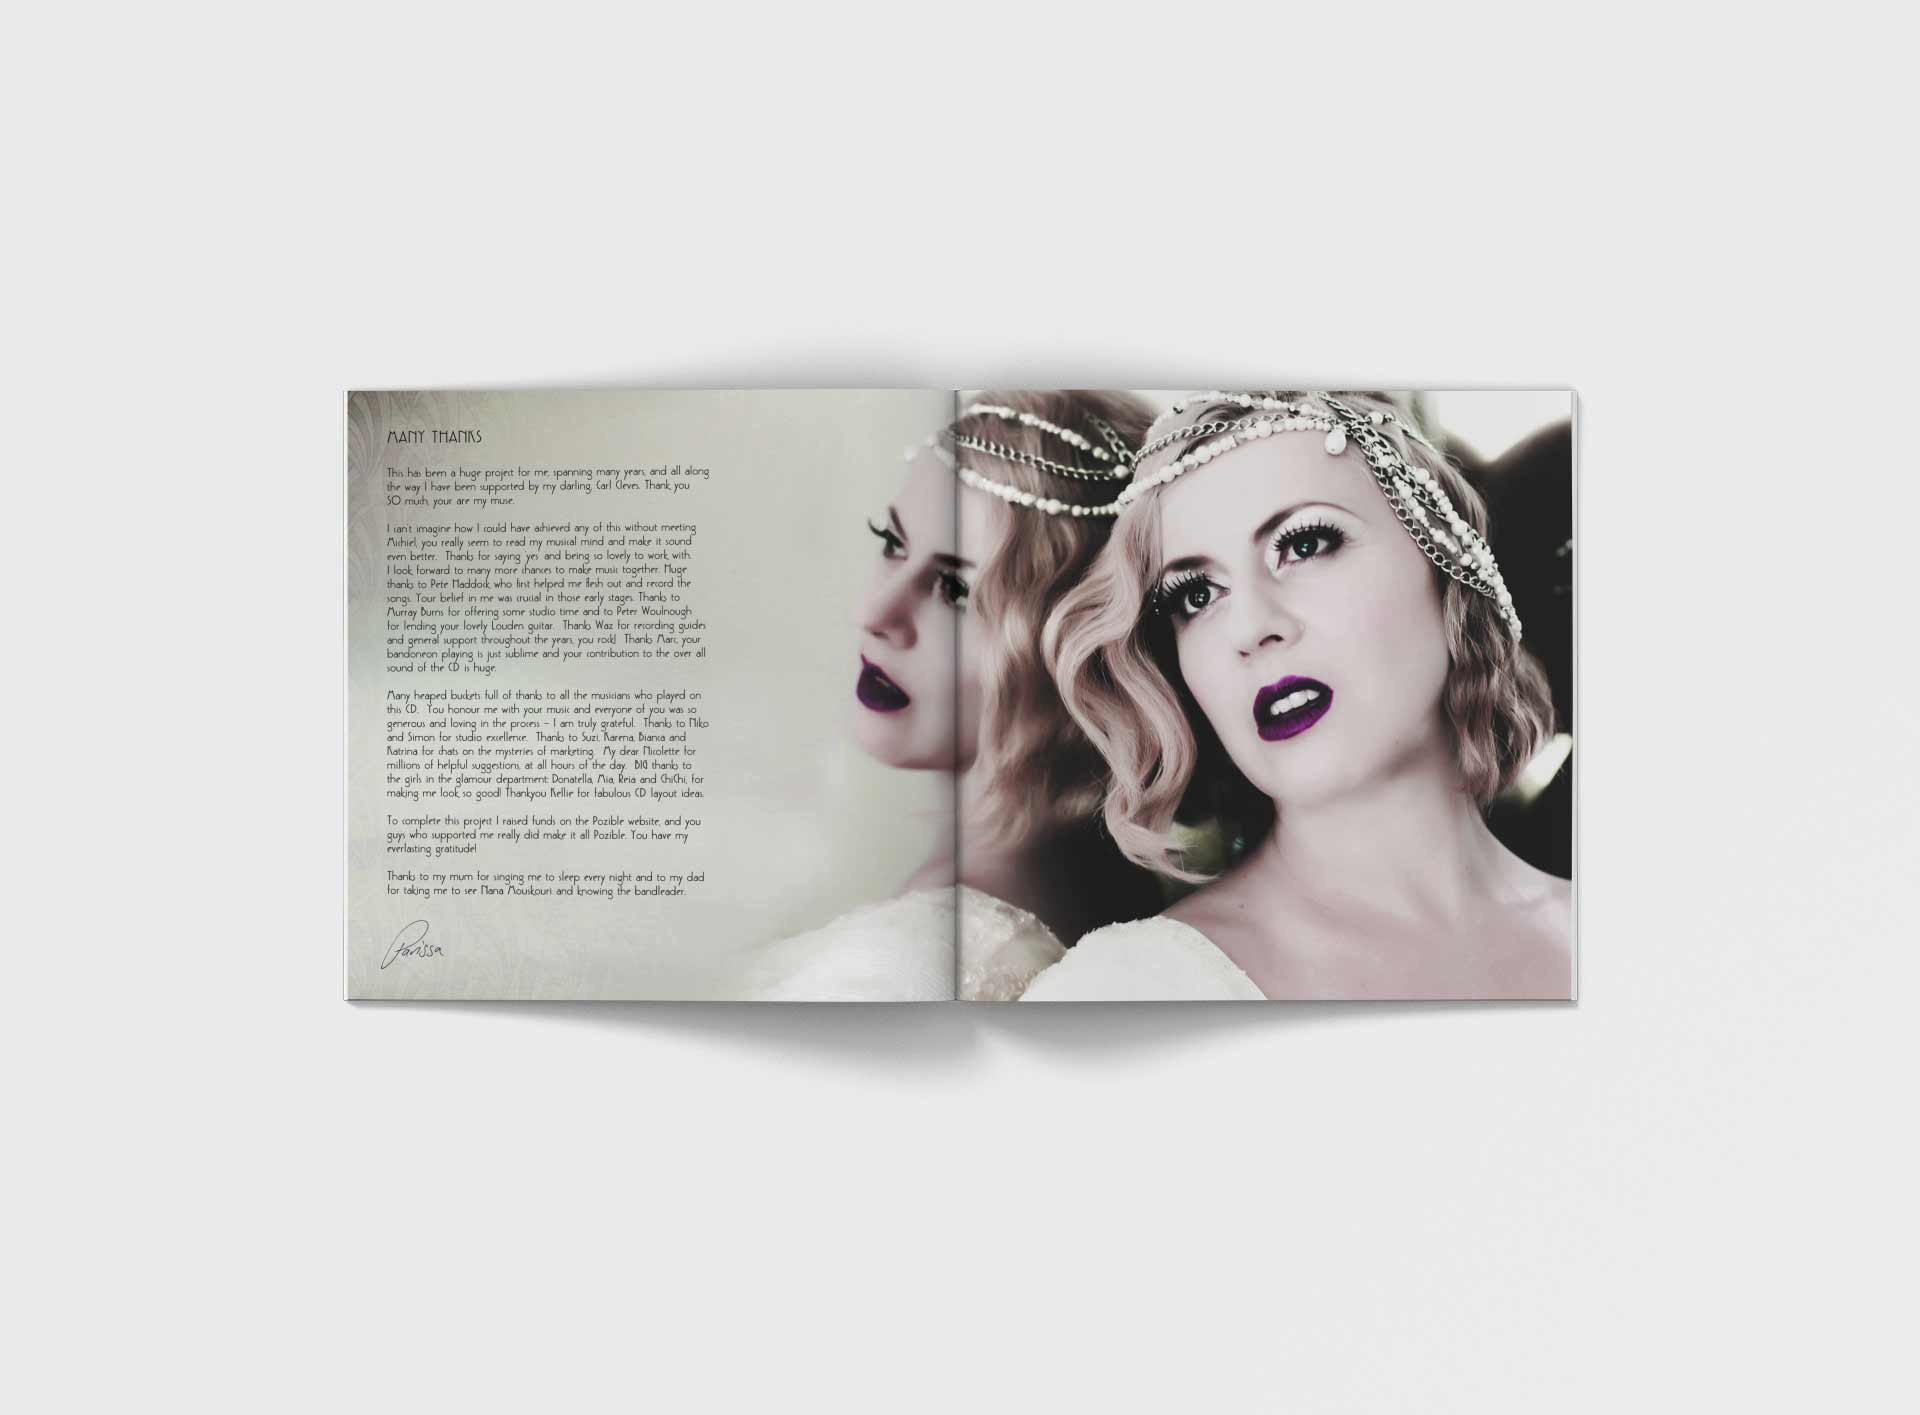 Parrisa Bouas Cd Inside Sleeve Music Graphic Design By Mango Tree Media